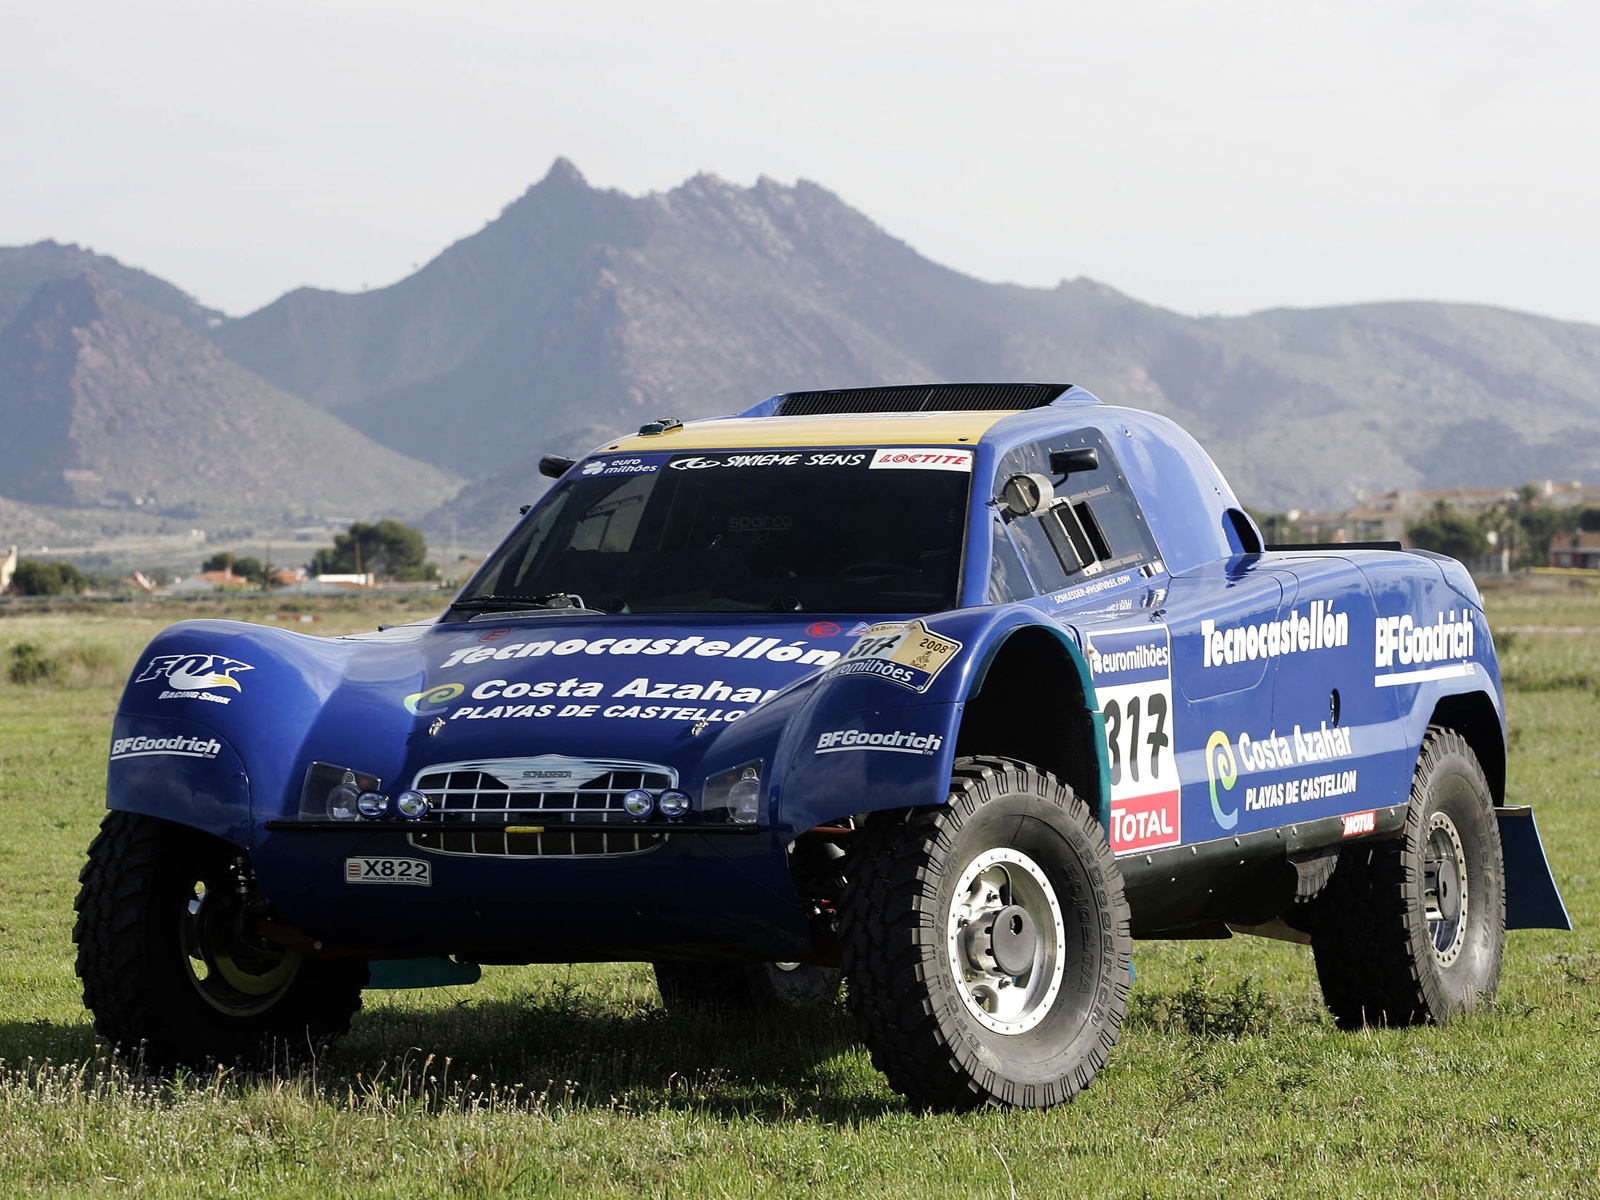 Ford Ranger X822 race truck racing offroad 4x4 wallpaper background 1600x1200